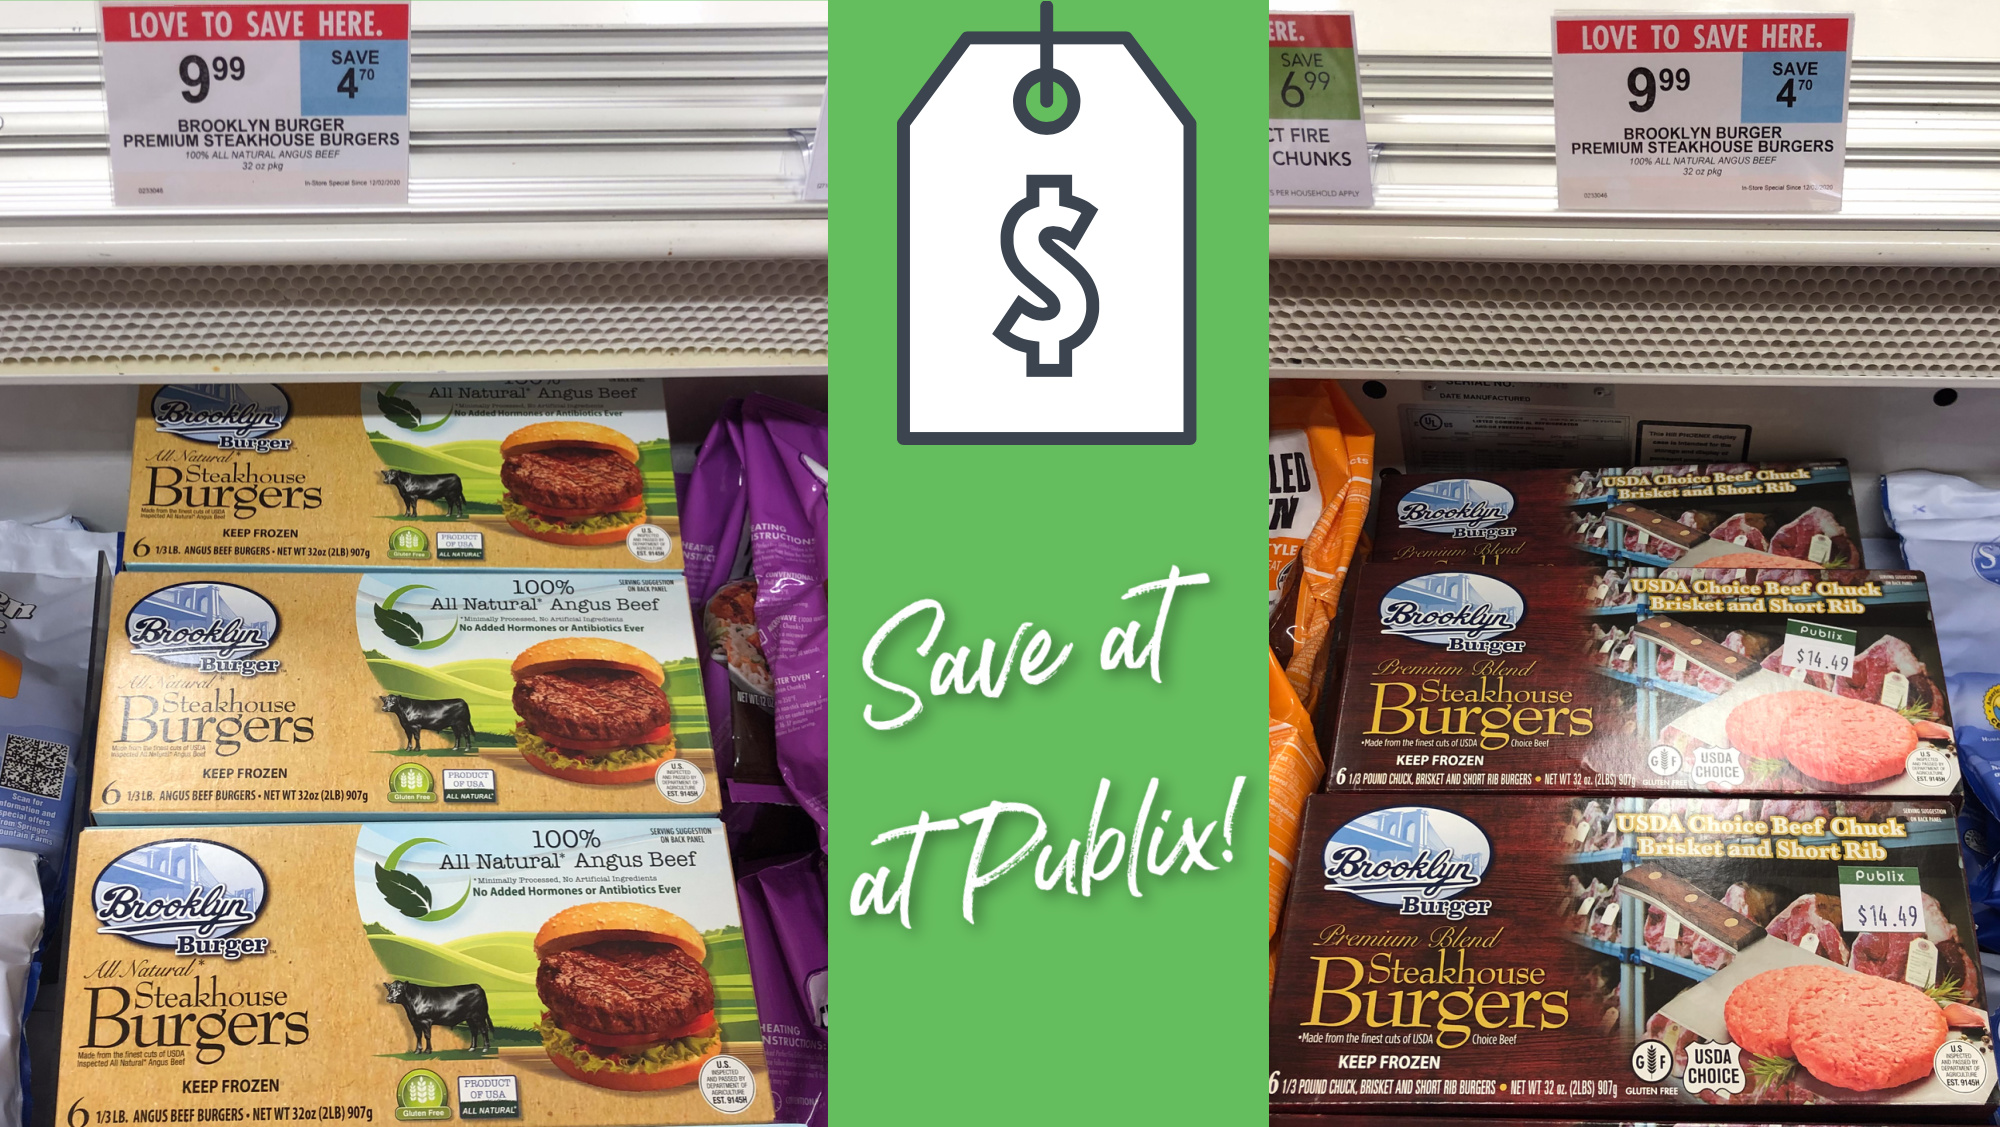 Brooklyn Burger Steakhouse Burgers Are Just $9.99 This Week At Publix - Stock Your Freezer For The Busy Holiday Season! on I Heart Publix